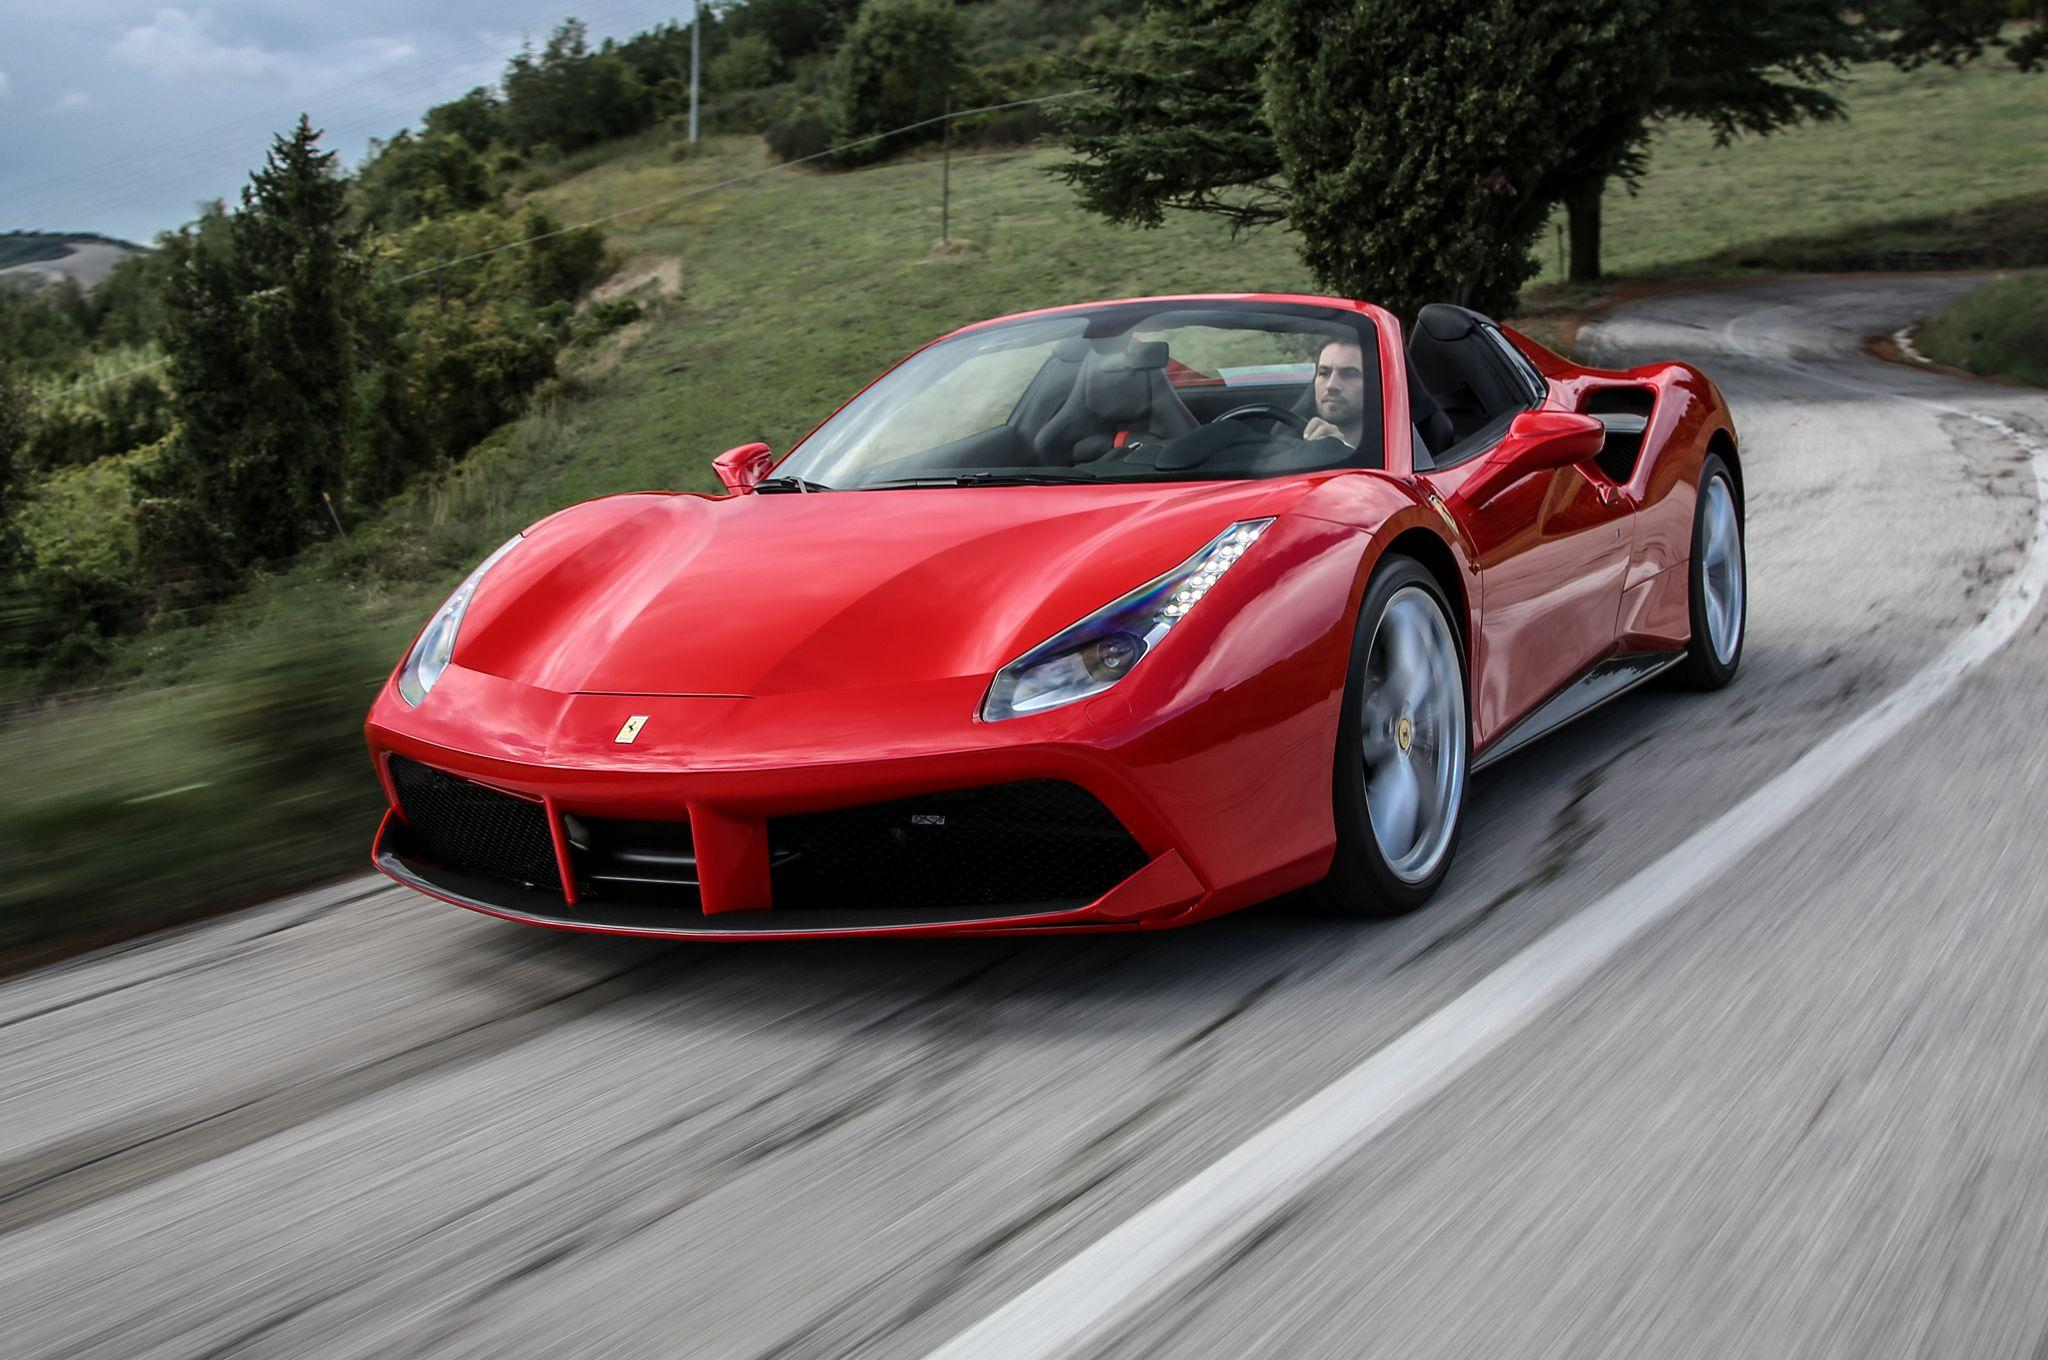 Ferrari 488 Spider wallpapers, Vehicles, HQ Ferrari 488 Spider